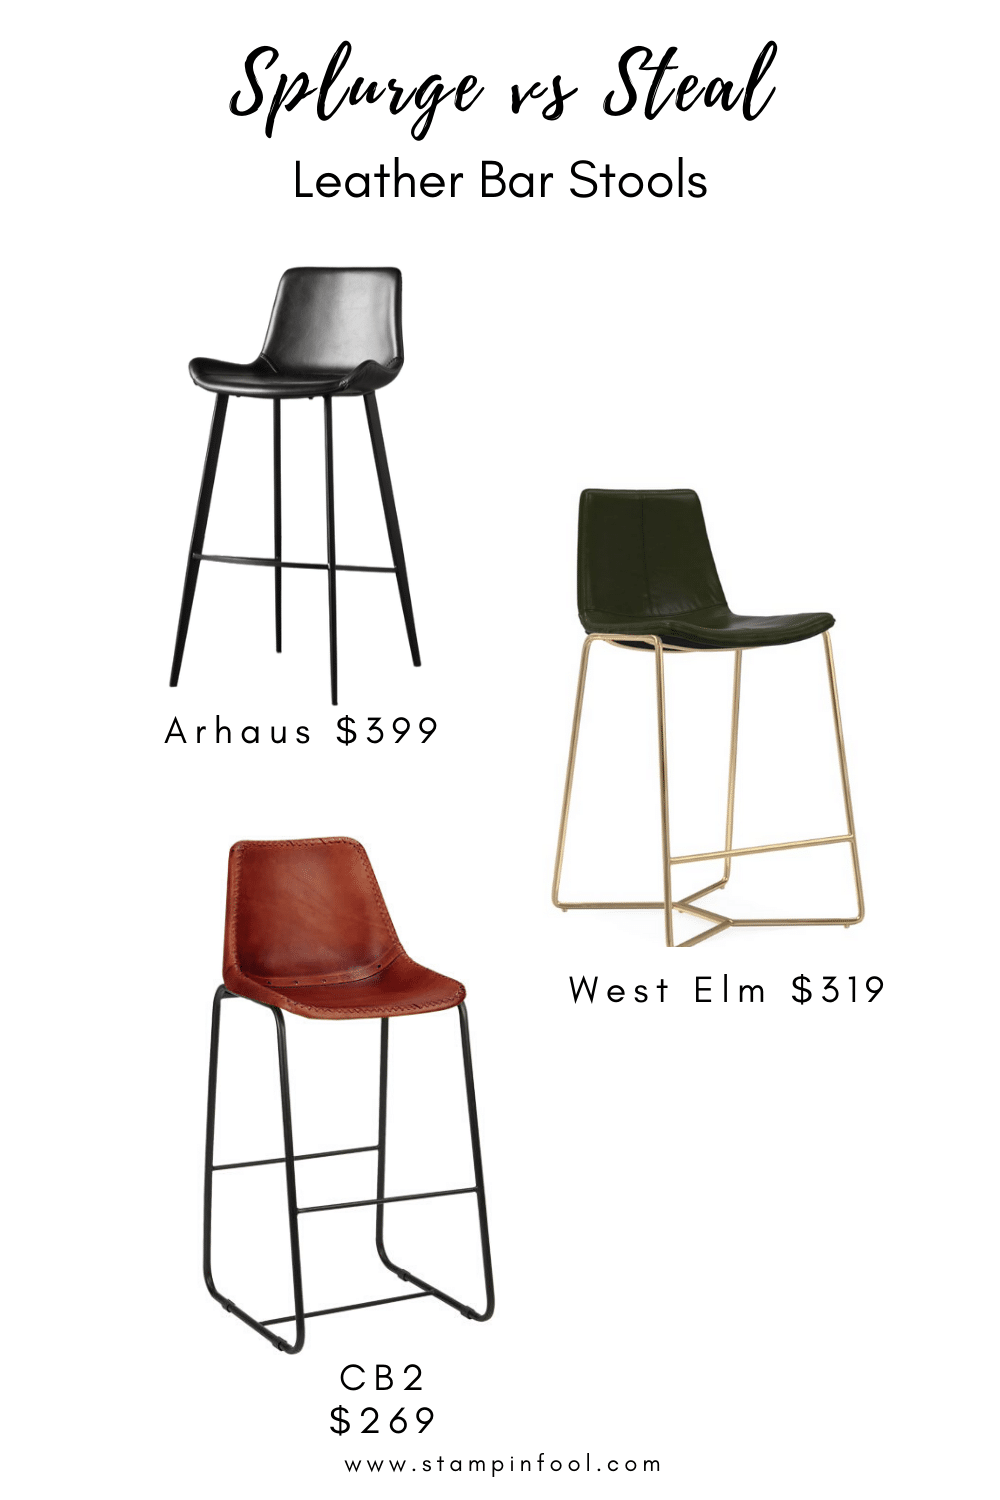 LEATHER BAR STOOLS A SPLURGE OR STEAL GUIDE TO STOOLS